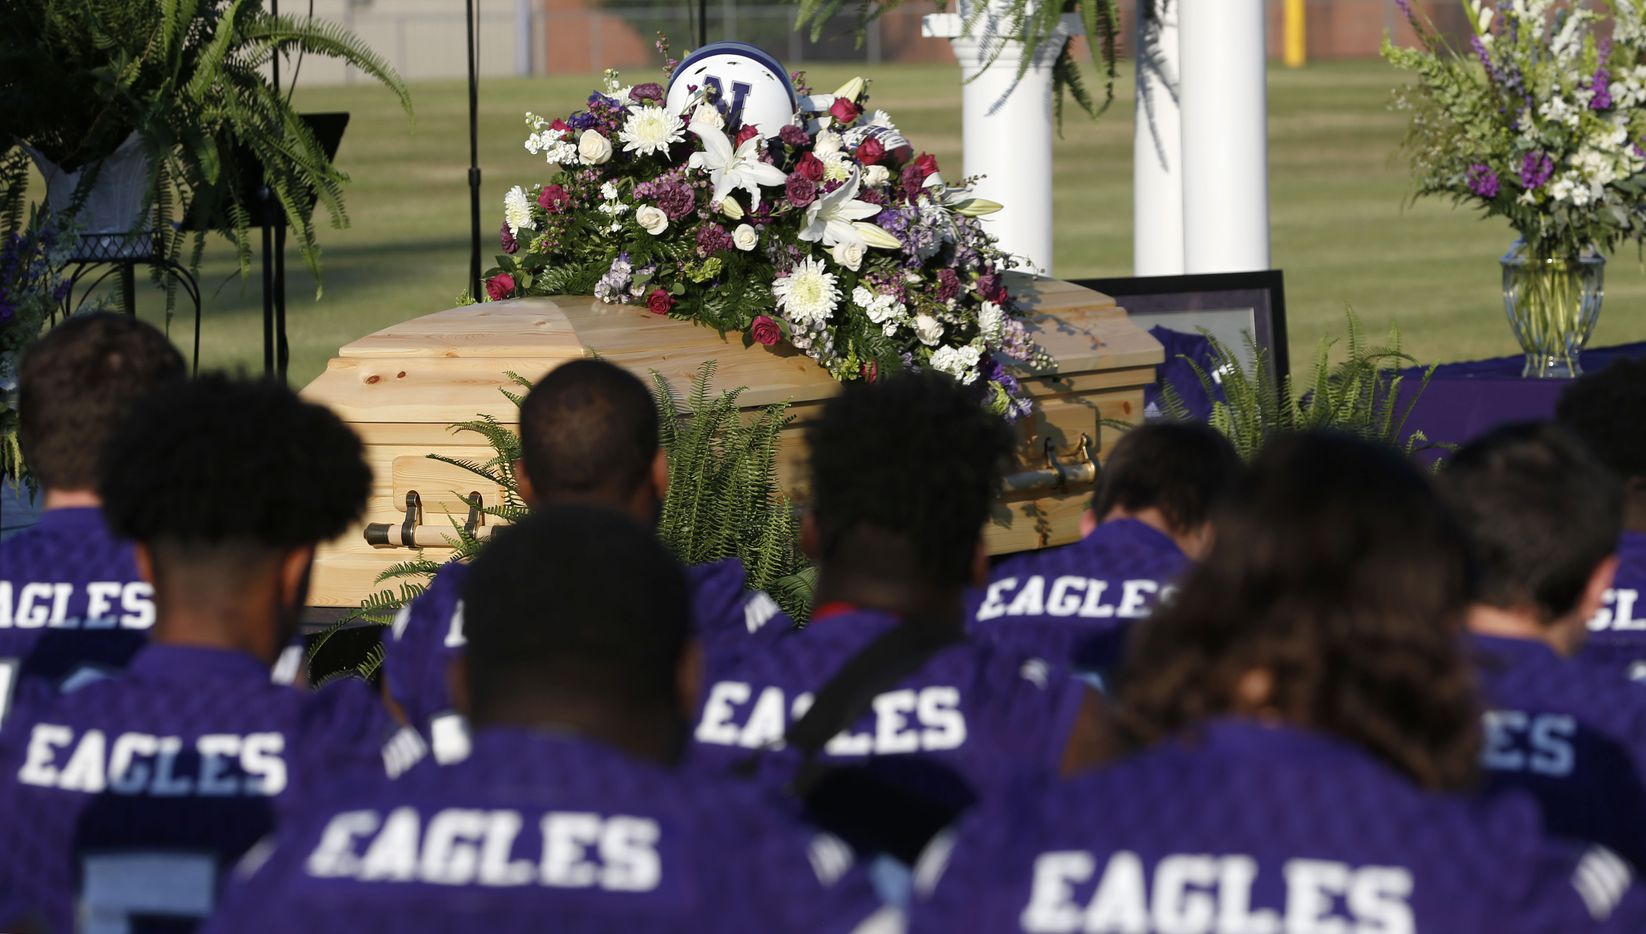 """Newton High School football team in attendance for their  head football coach William Theodore """"W.T."""" Johnston's memorial service at Curtis Barbay Field at Newton High School in Newton, Texas on Wednesday, May 15, 2019. The team won state football championships in 2017 and 2018. (Vernon Bryant/The Dallas Morning News)"""